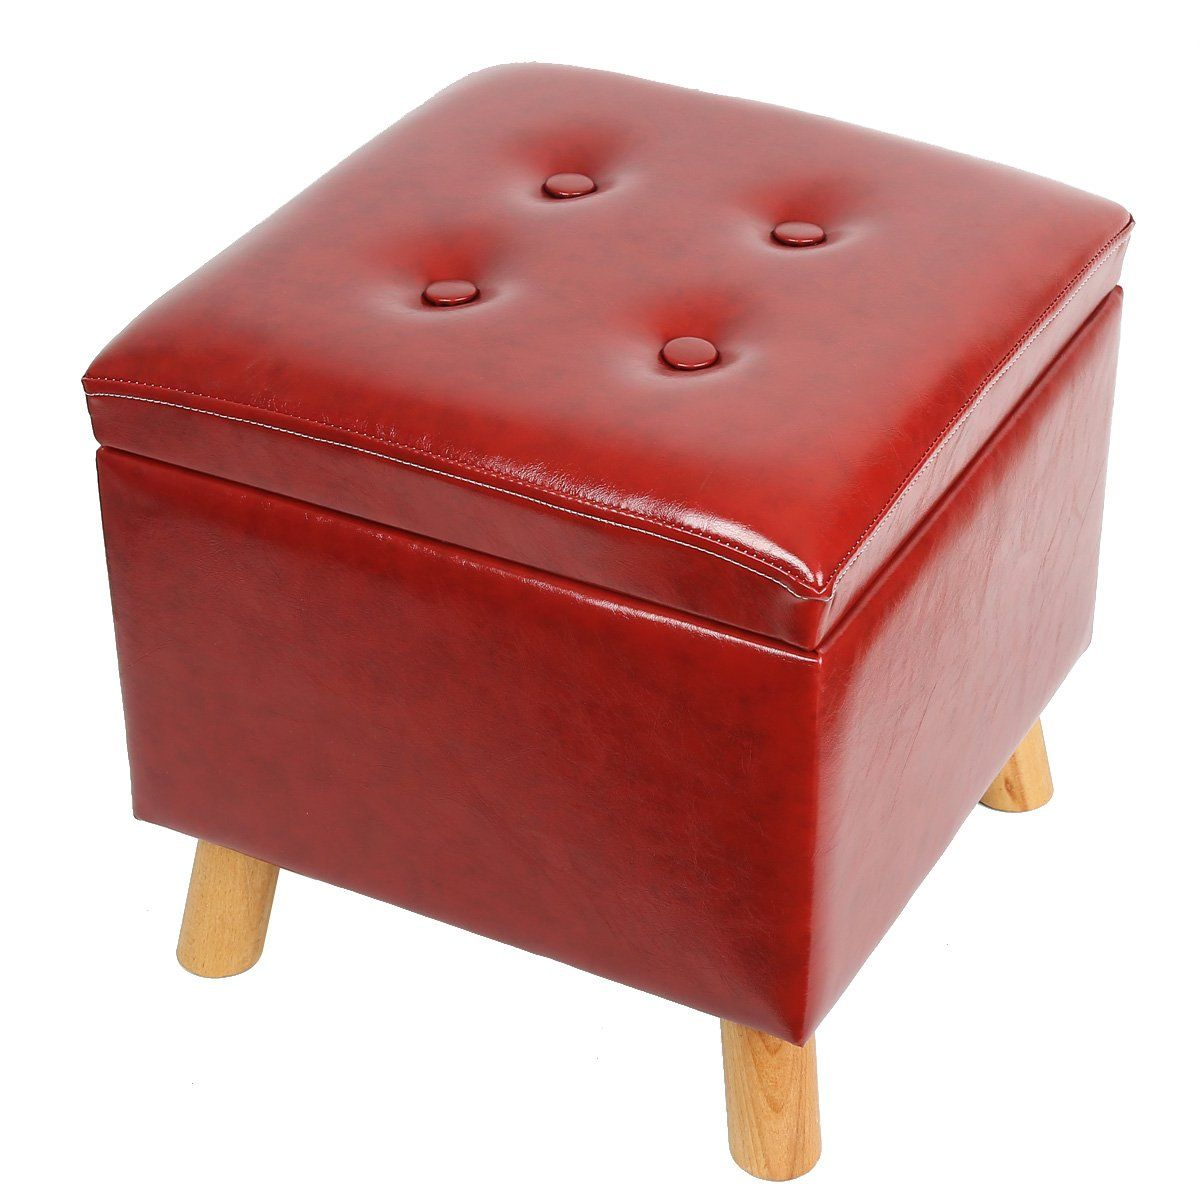 Eshow Ottoman With Storage Ottoman And Foot Stools Cube Leather Pouf Shoe Bench Storage Square S Storage Ottoman Bench Decoration And Furniture Storage Ottoman